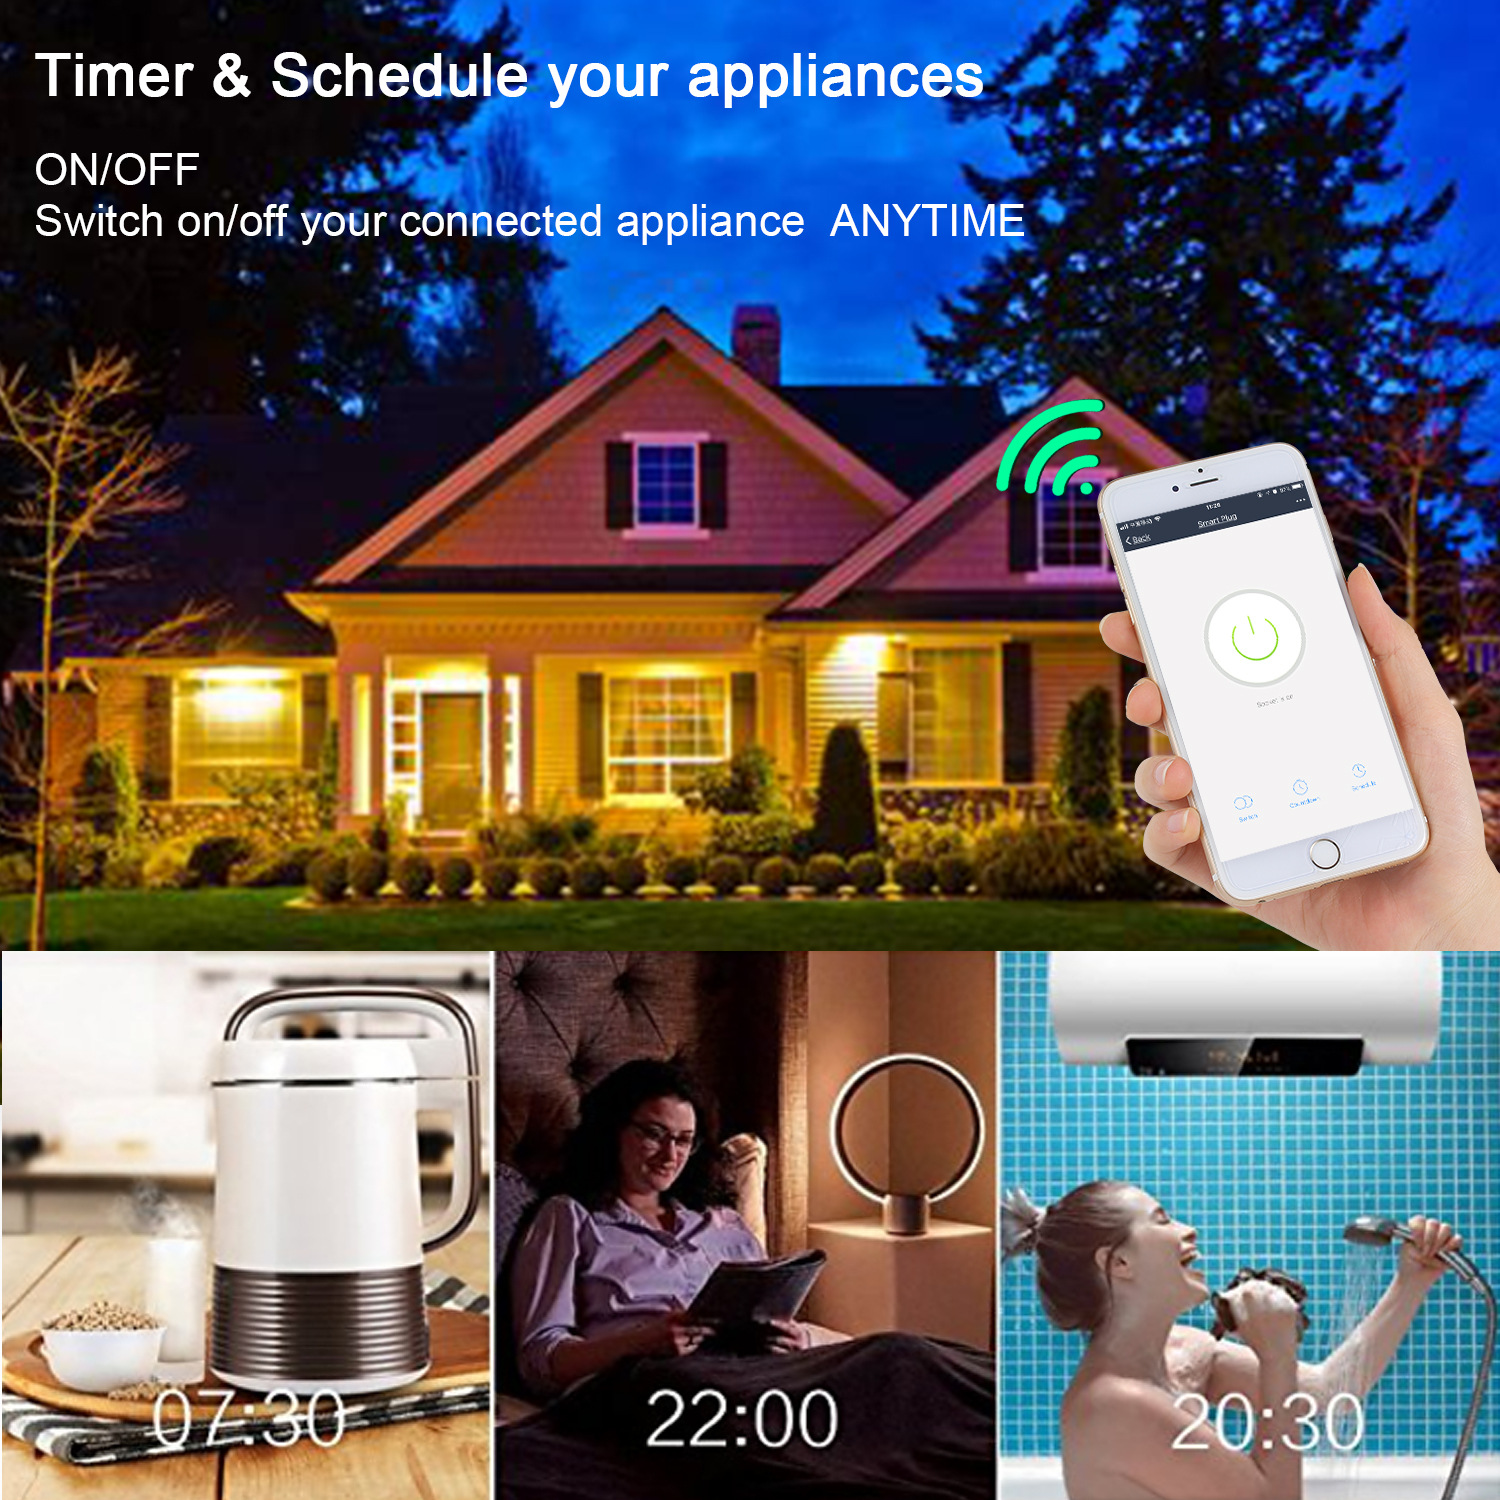 2 Pcs Brazilian WiFi Socket Smart Life APP Remote Control Brazil Standard Smart Outlet 16A Power Monitor Timer Google Compatible in Home Automation Modules from Consumer Electronics